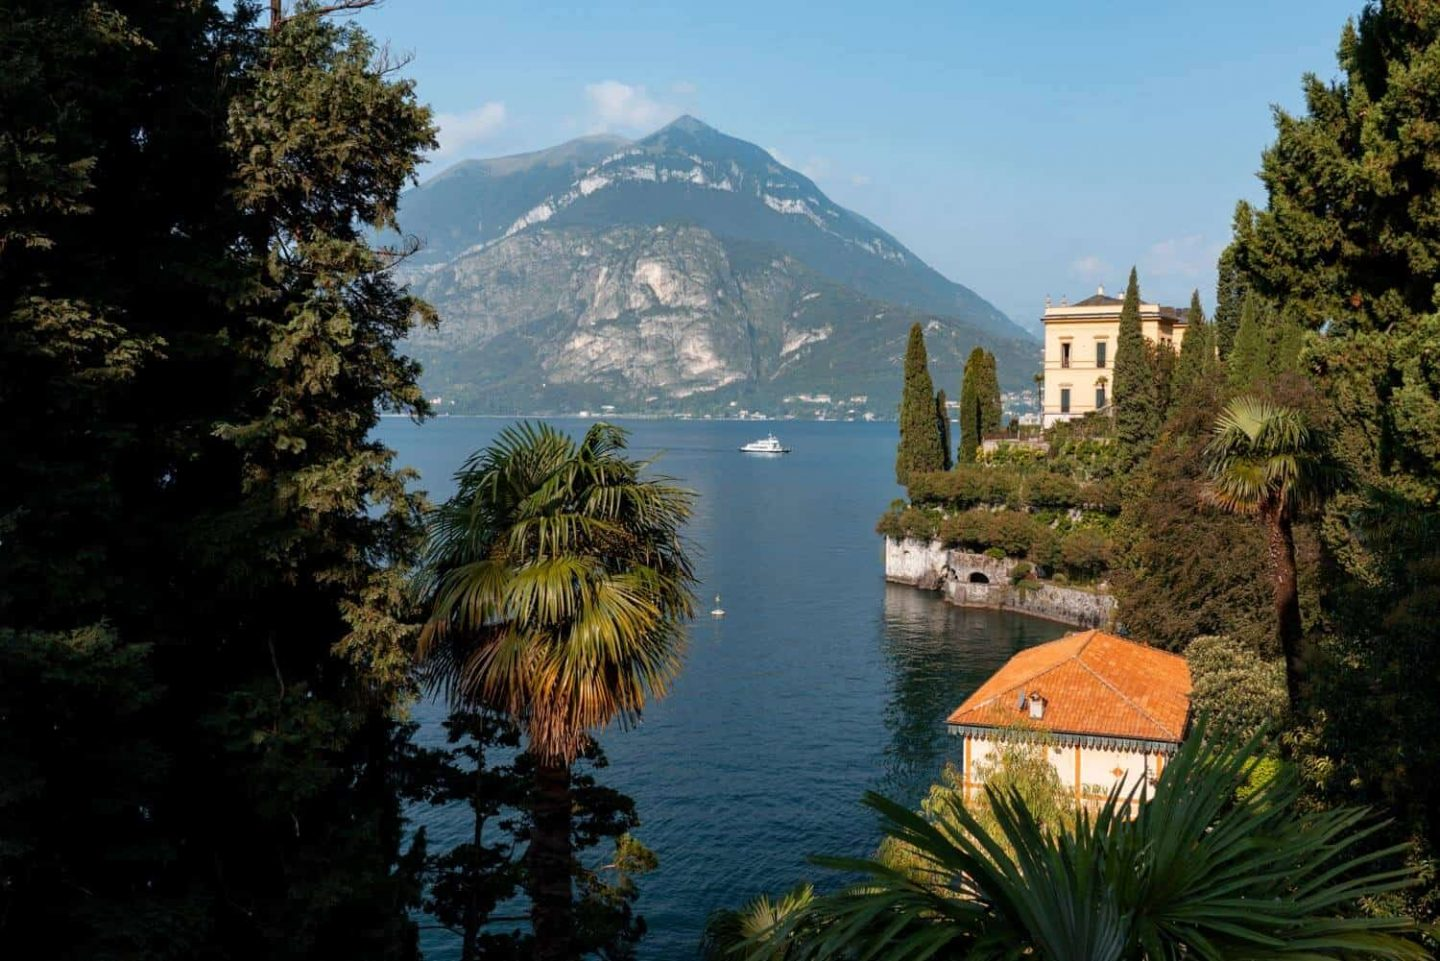 Villa Cipressi is a must see on a day trip milan to lake como